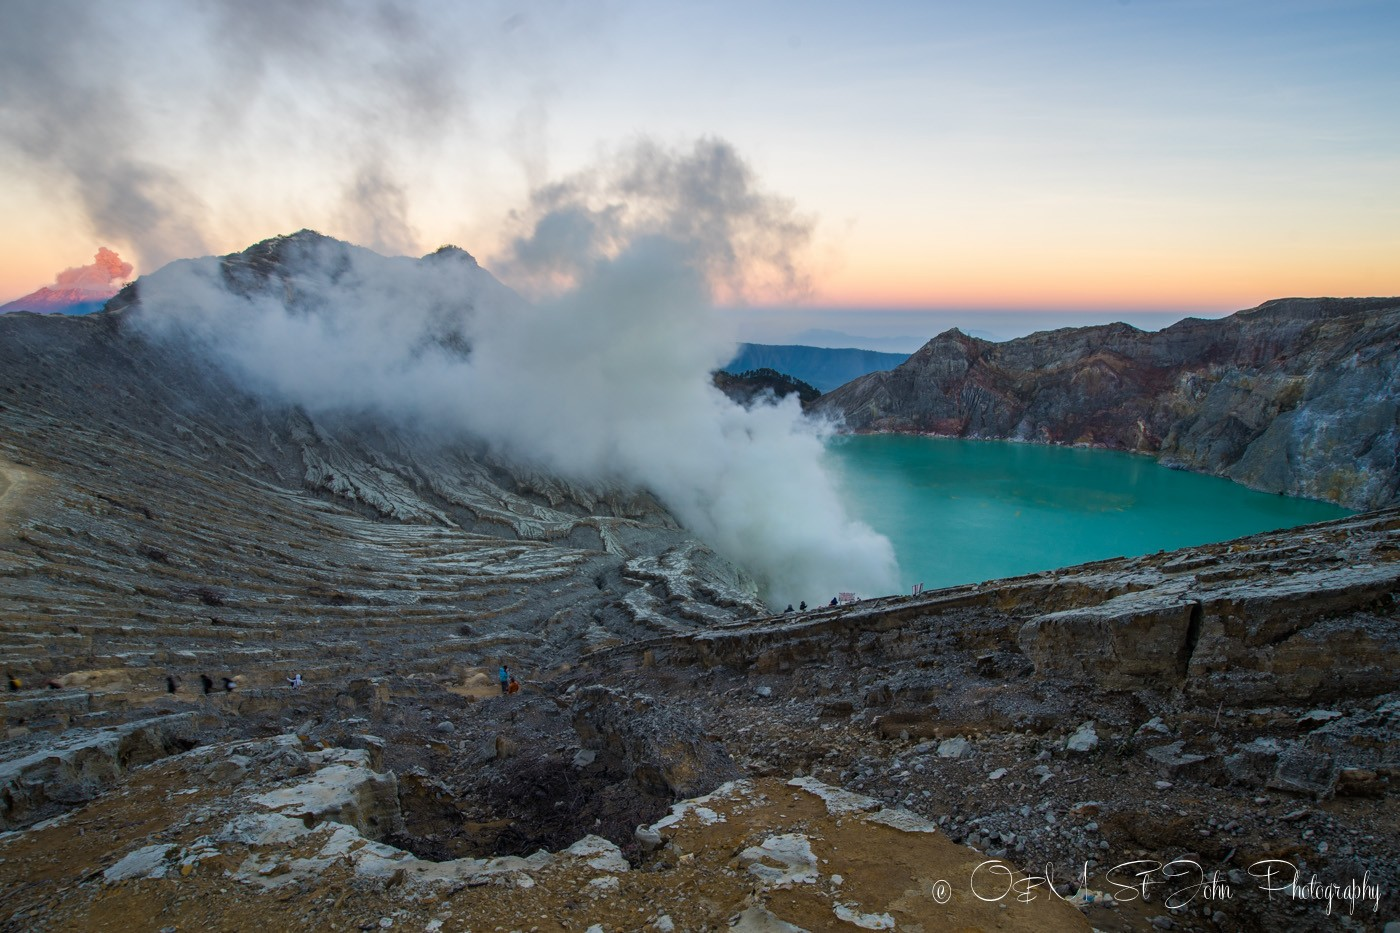 Sunrise over Ijen Plateau, East Java. Indonesia